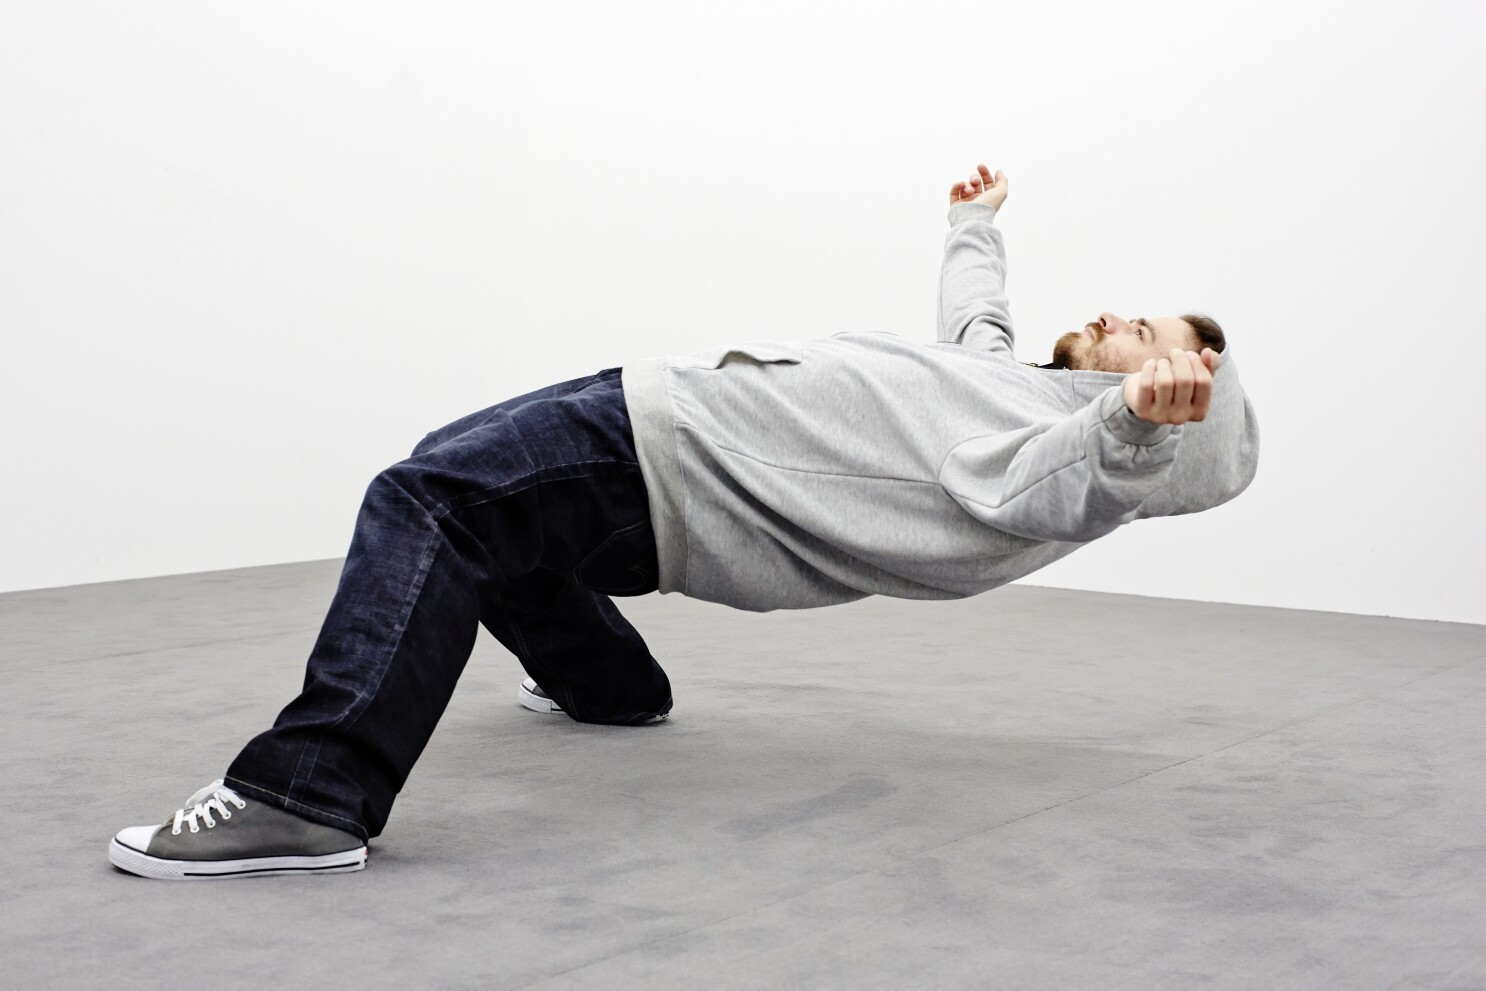 Why is this man suspended midair at MOCA? And how?